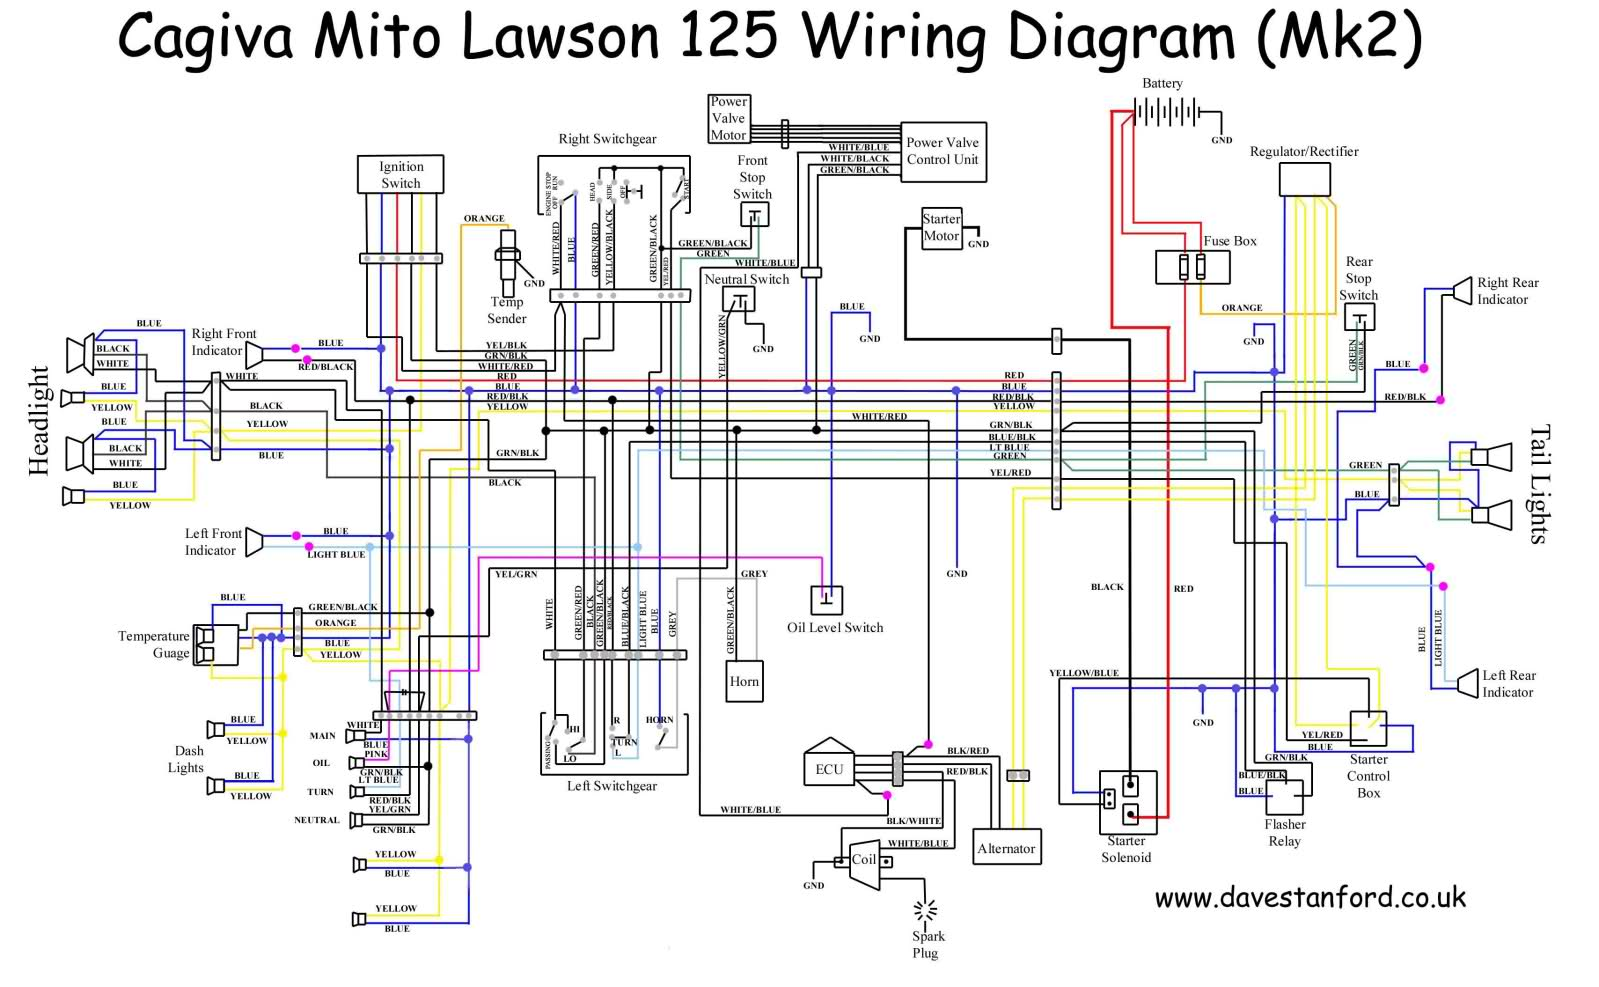 cagiva mito 125 : cagiva mito 125 wiring diagrams - electrics - electrical 125cc wiring diagram